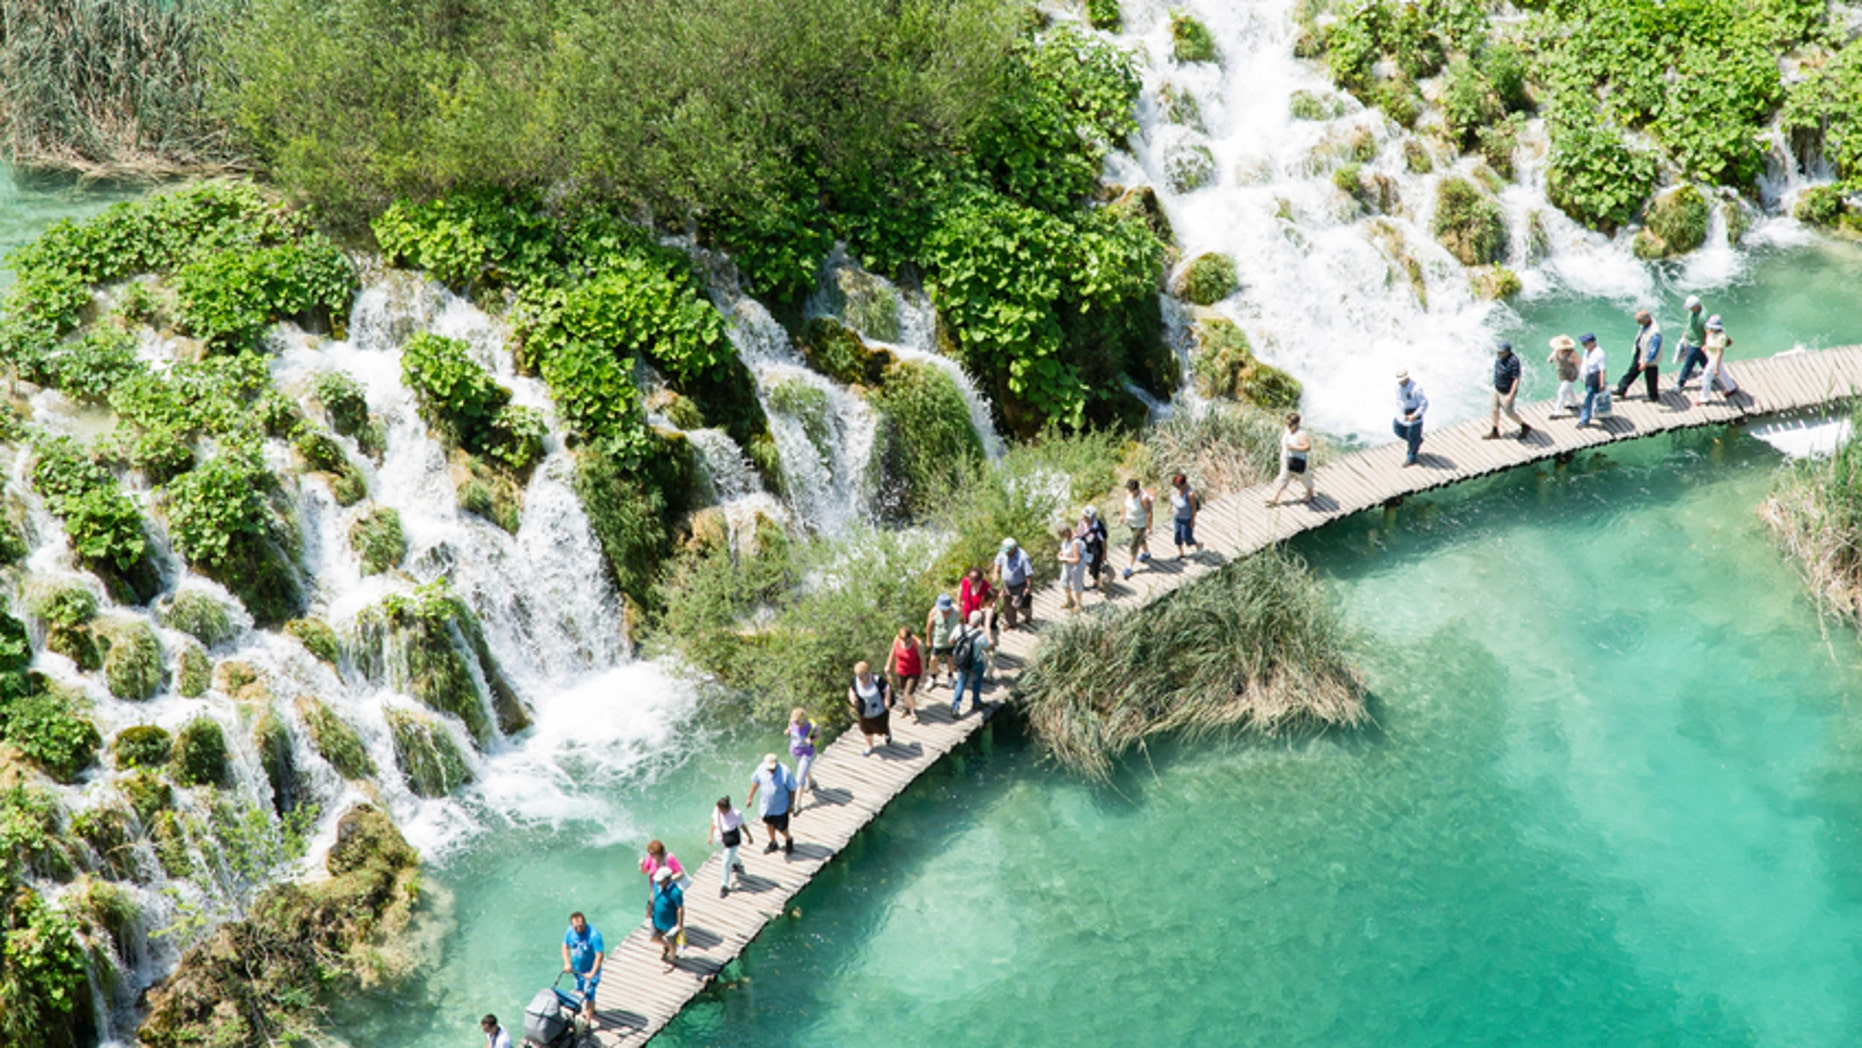 Plitvice Lakes National Park in Croatia has seen a surge in visitors in recent years.